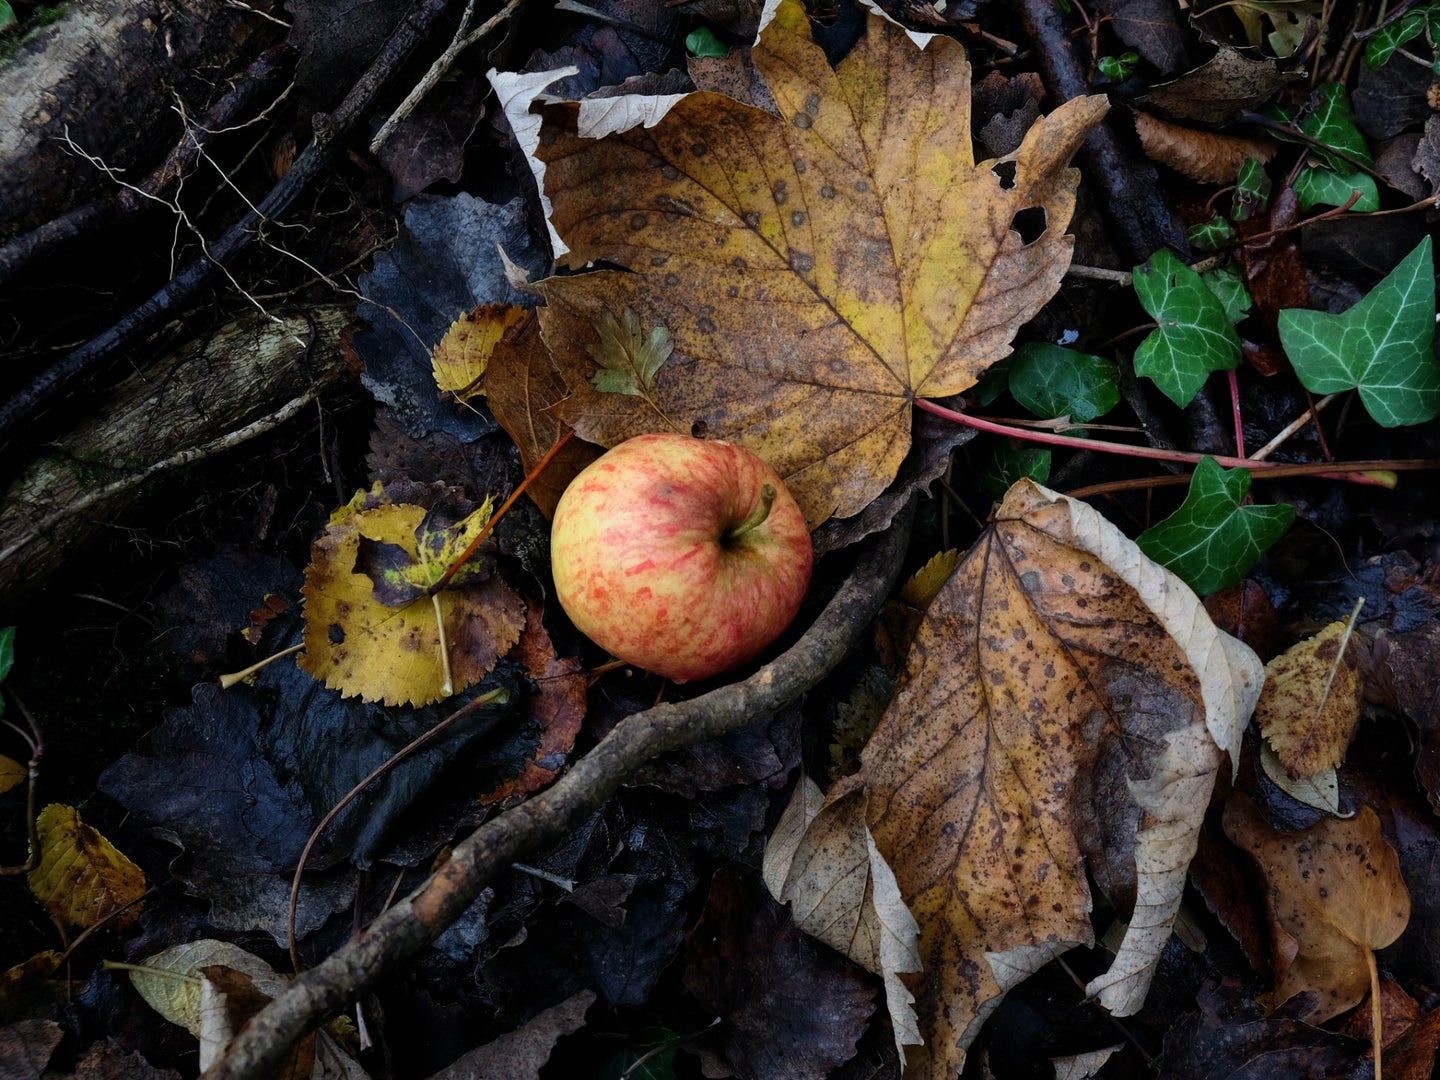 An apple on the ground in the forest, surrounded by fallen leaves.